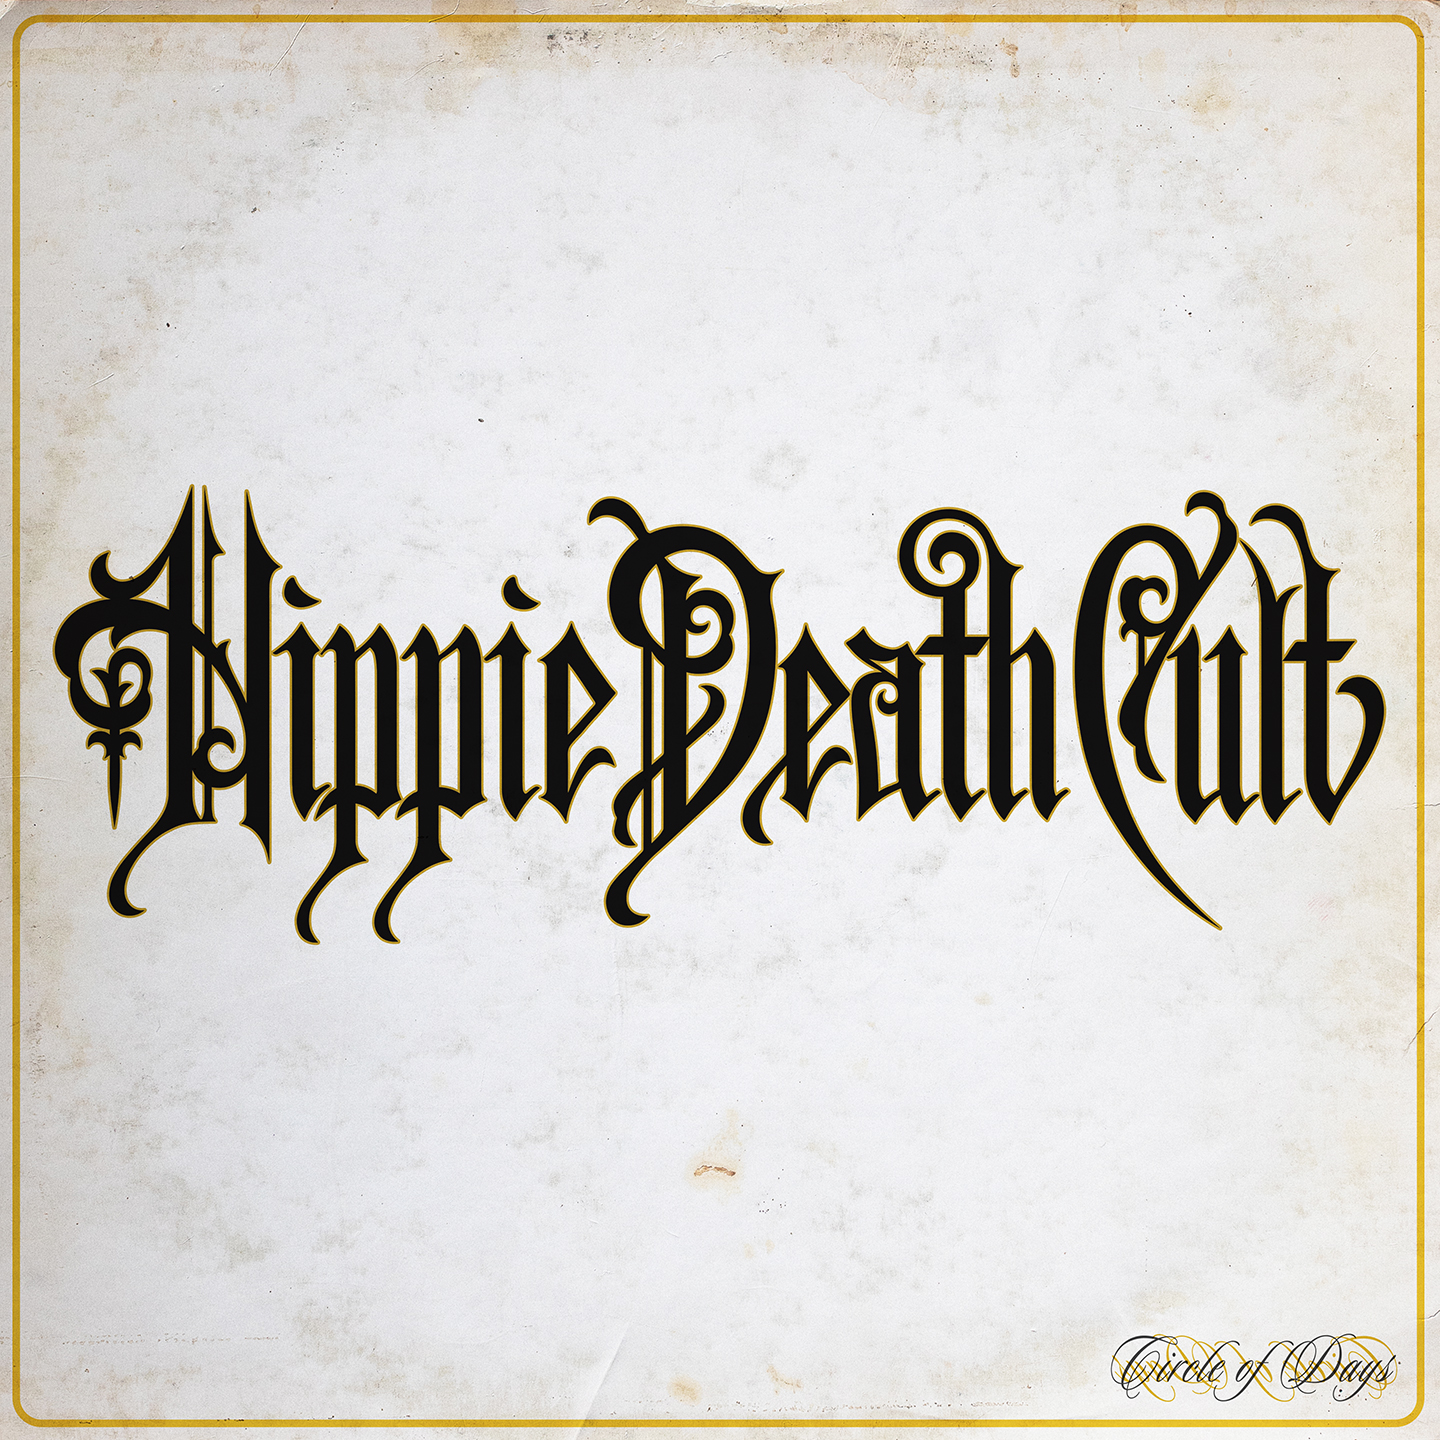 Hippie Death Cult Circle of Days